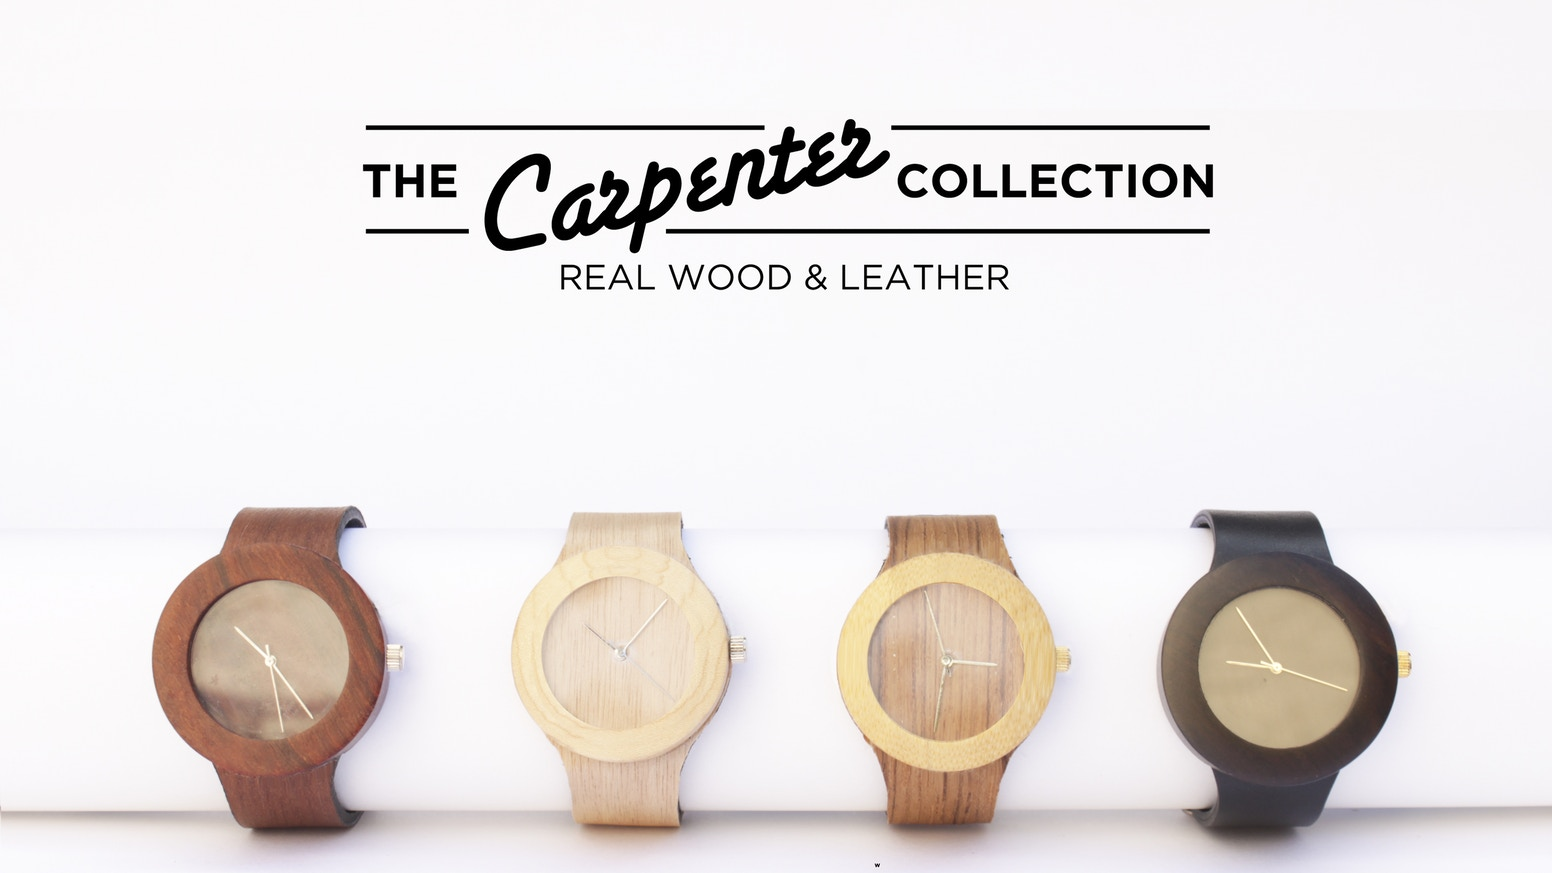 This is the first soft strapped watch made with 100% all-natural wood! A clean and minimal design to show off the wood's beauty.